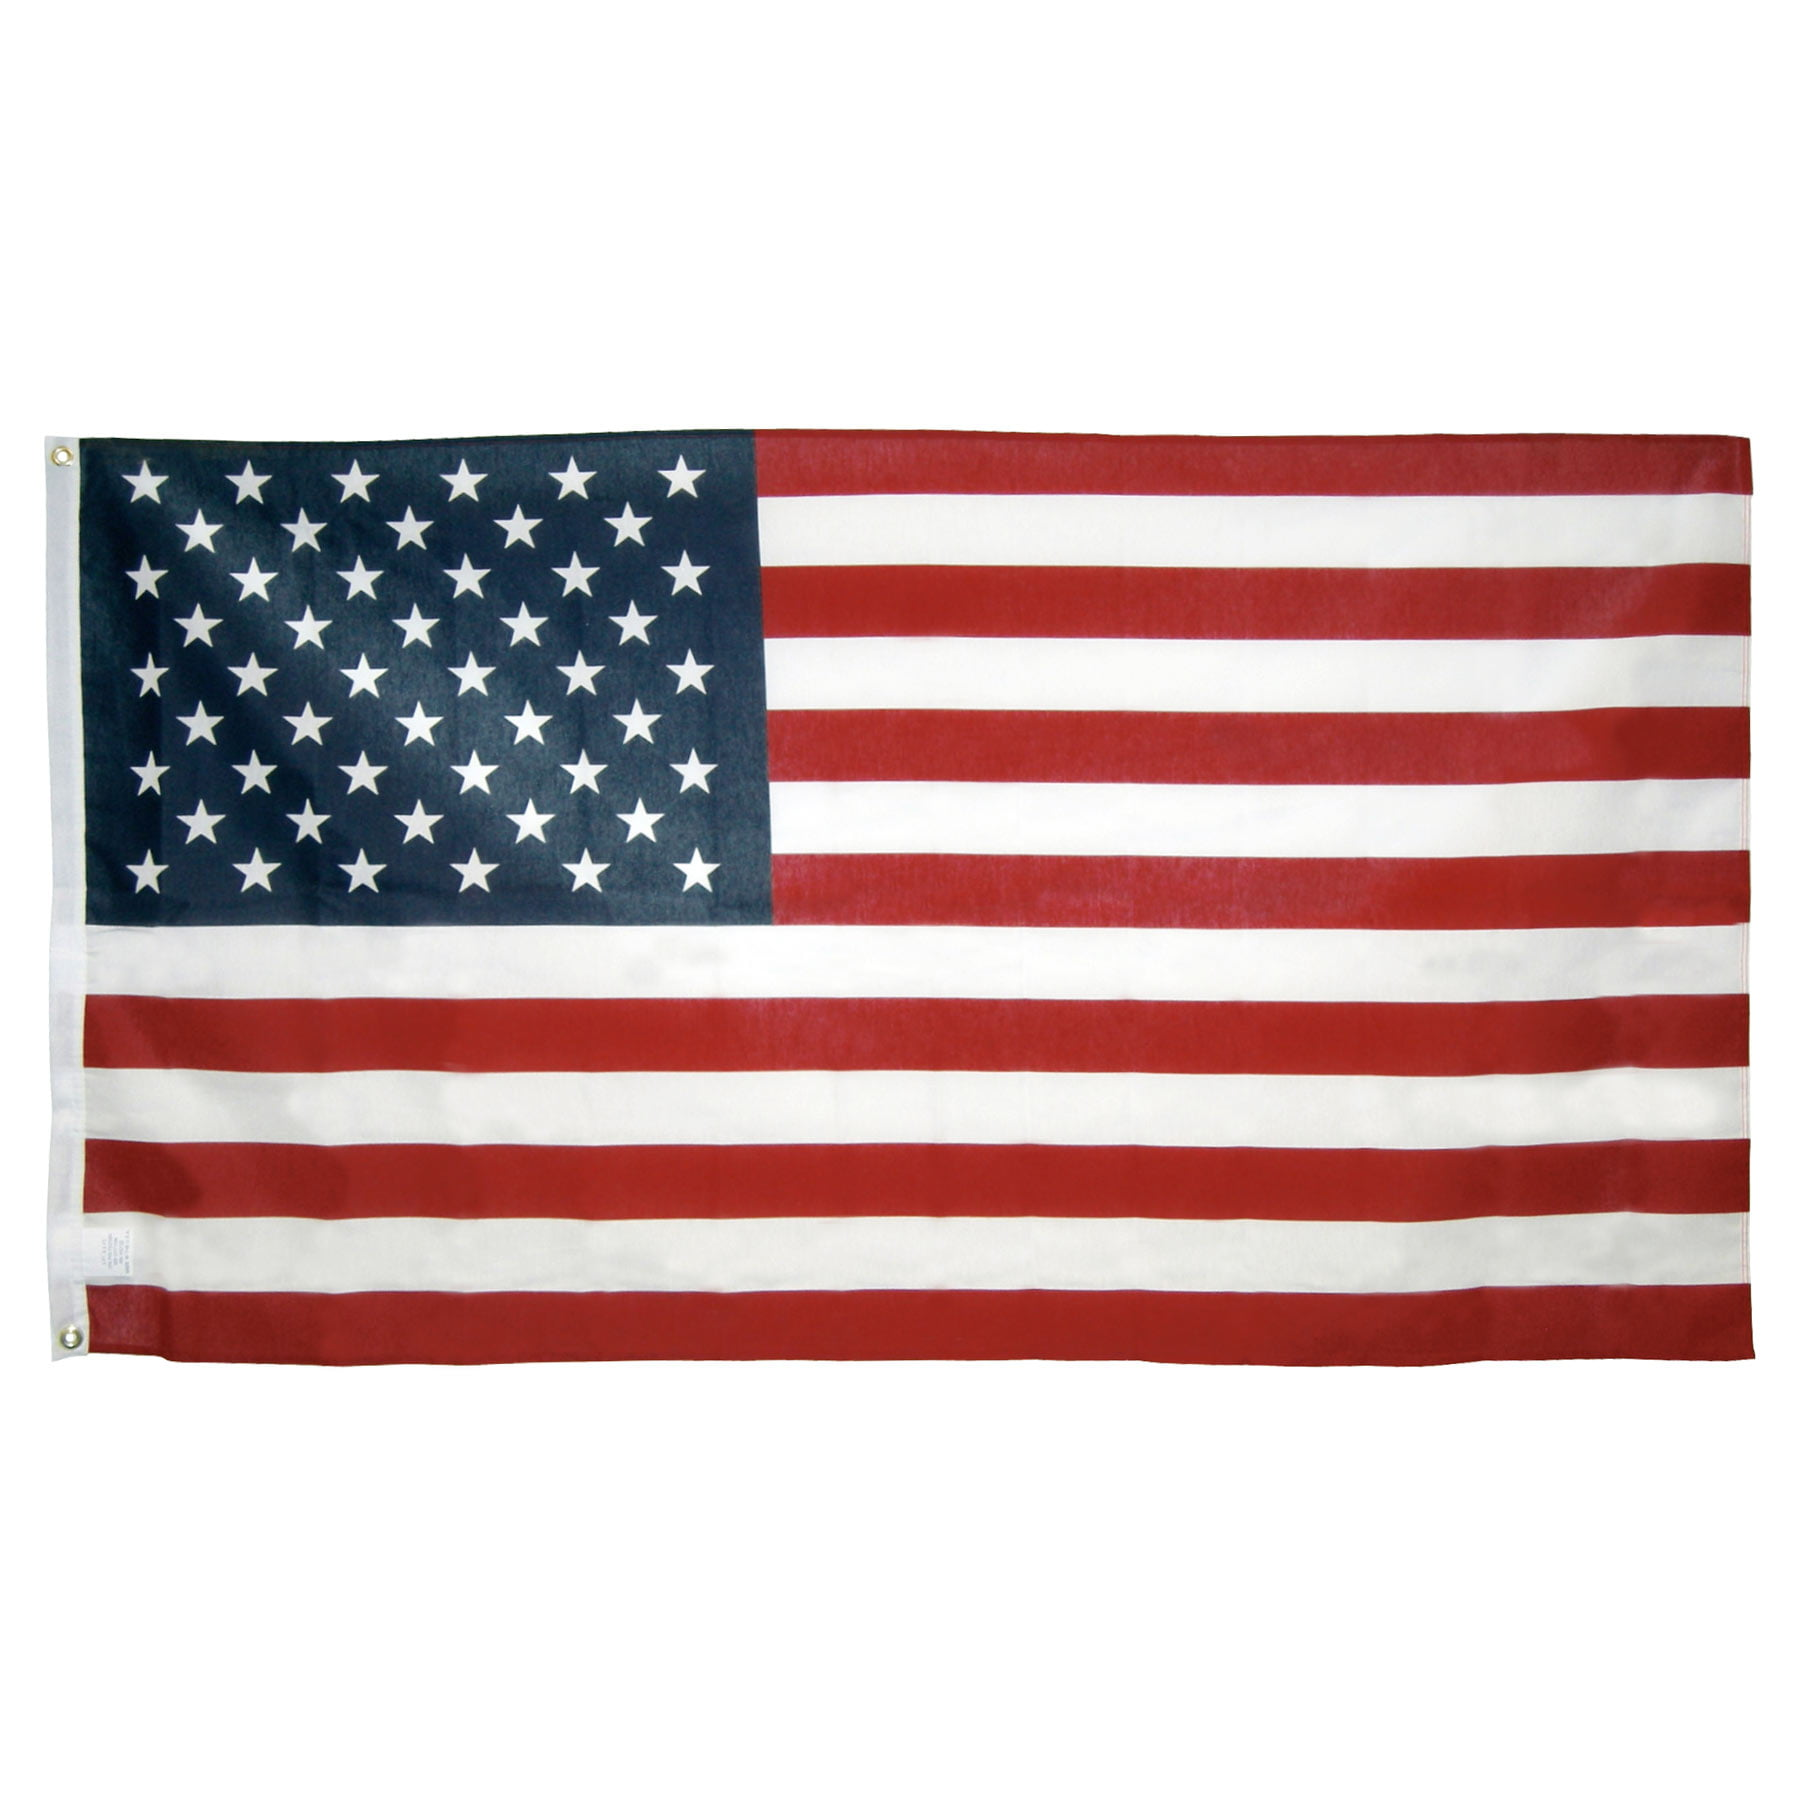 3ft x 5ft Poly Cotton American Flag U.S. Made by Online Stores